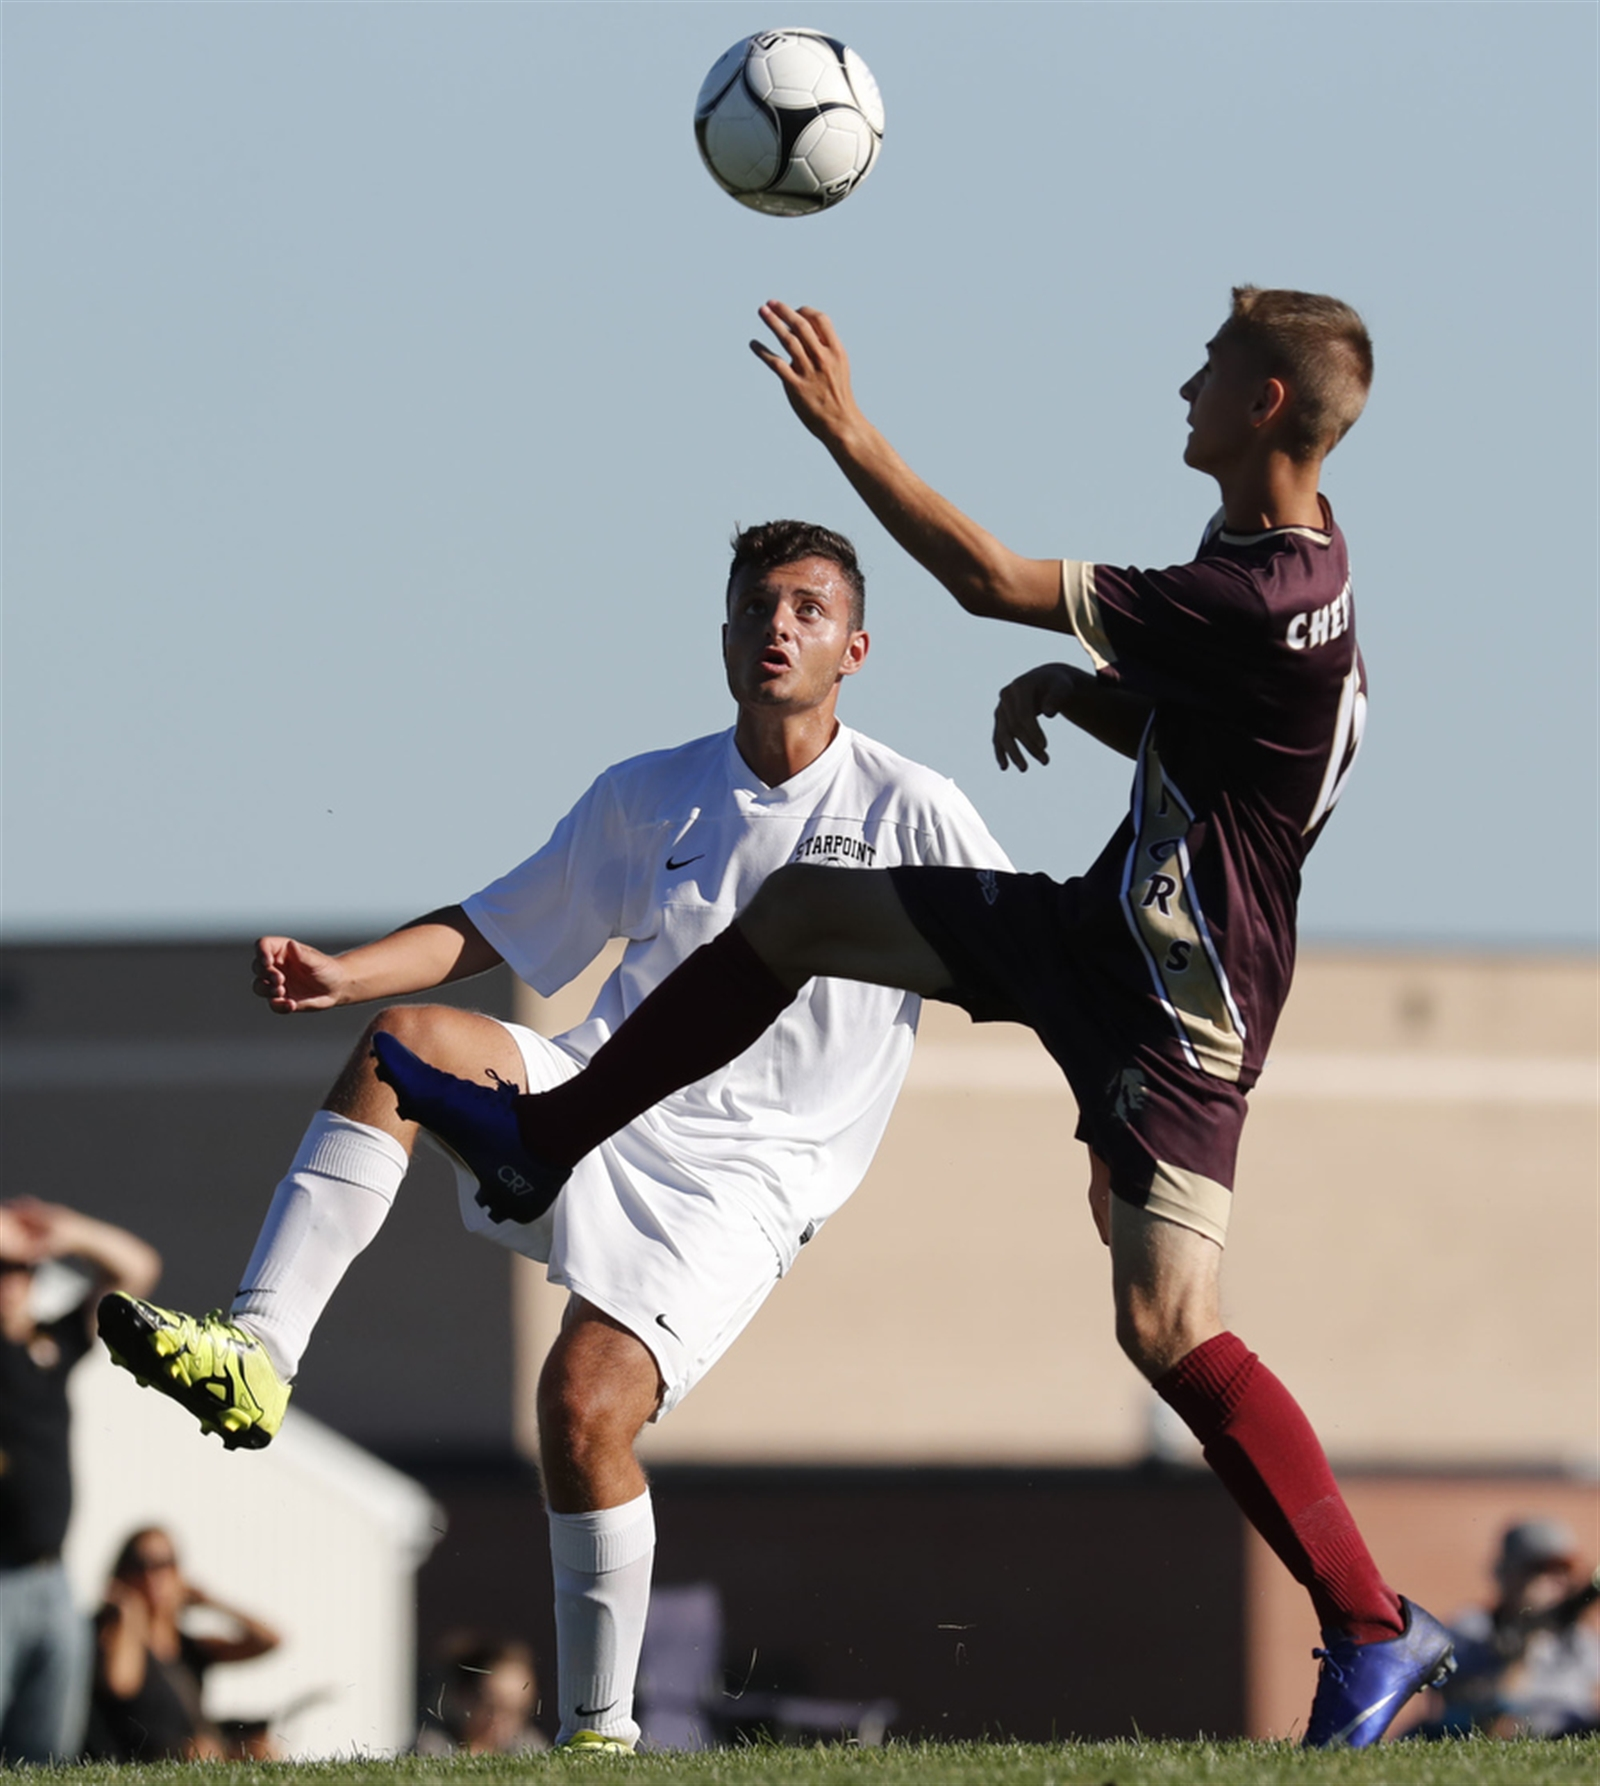 Cheektowaga's Nathan Obstarczyk and Starpoint's Gird Ceno battle for a loose ball during first half action.